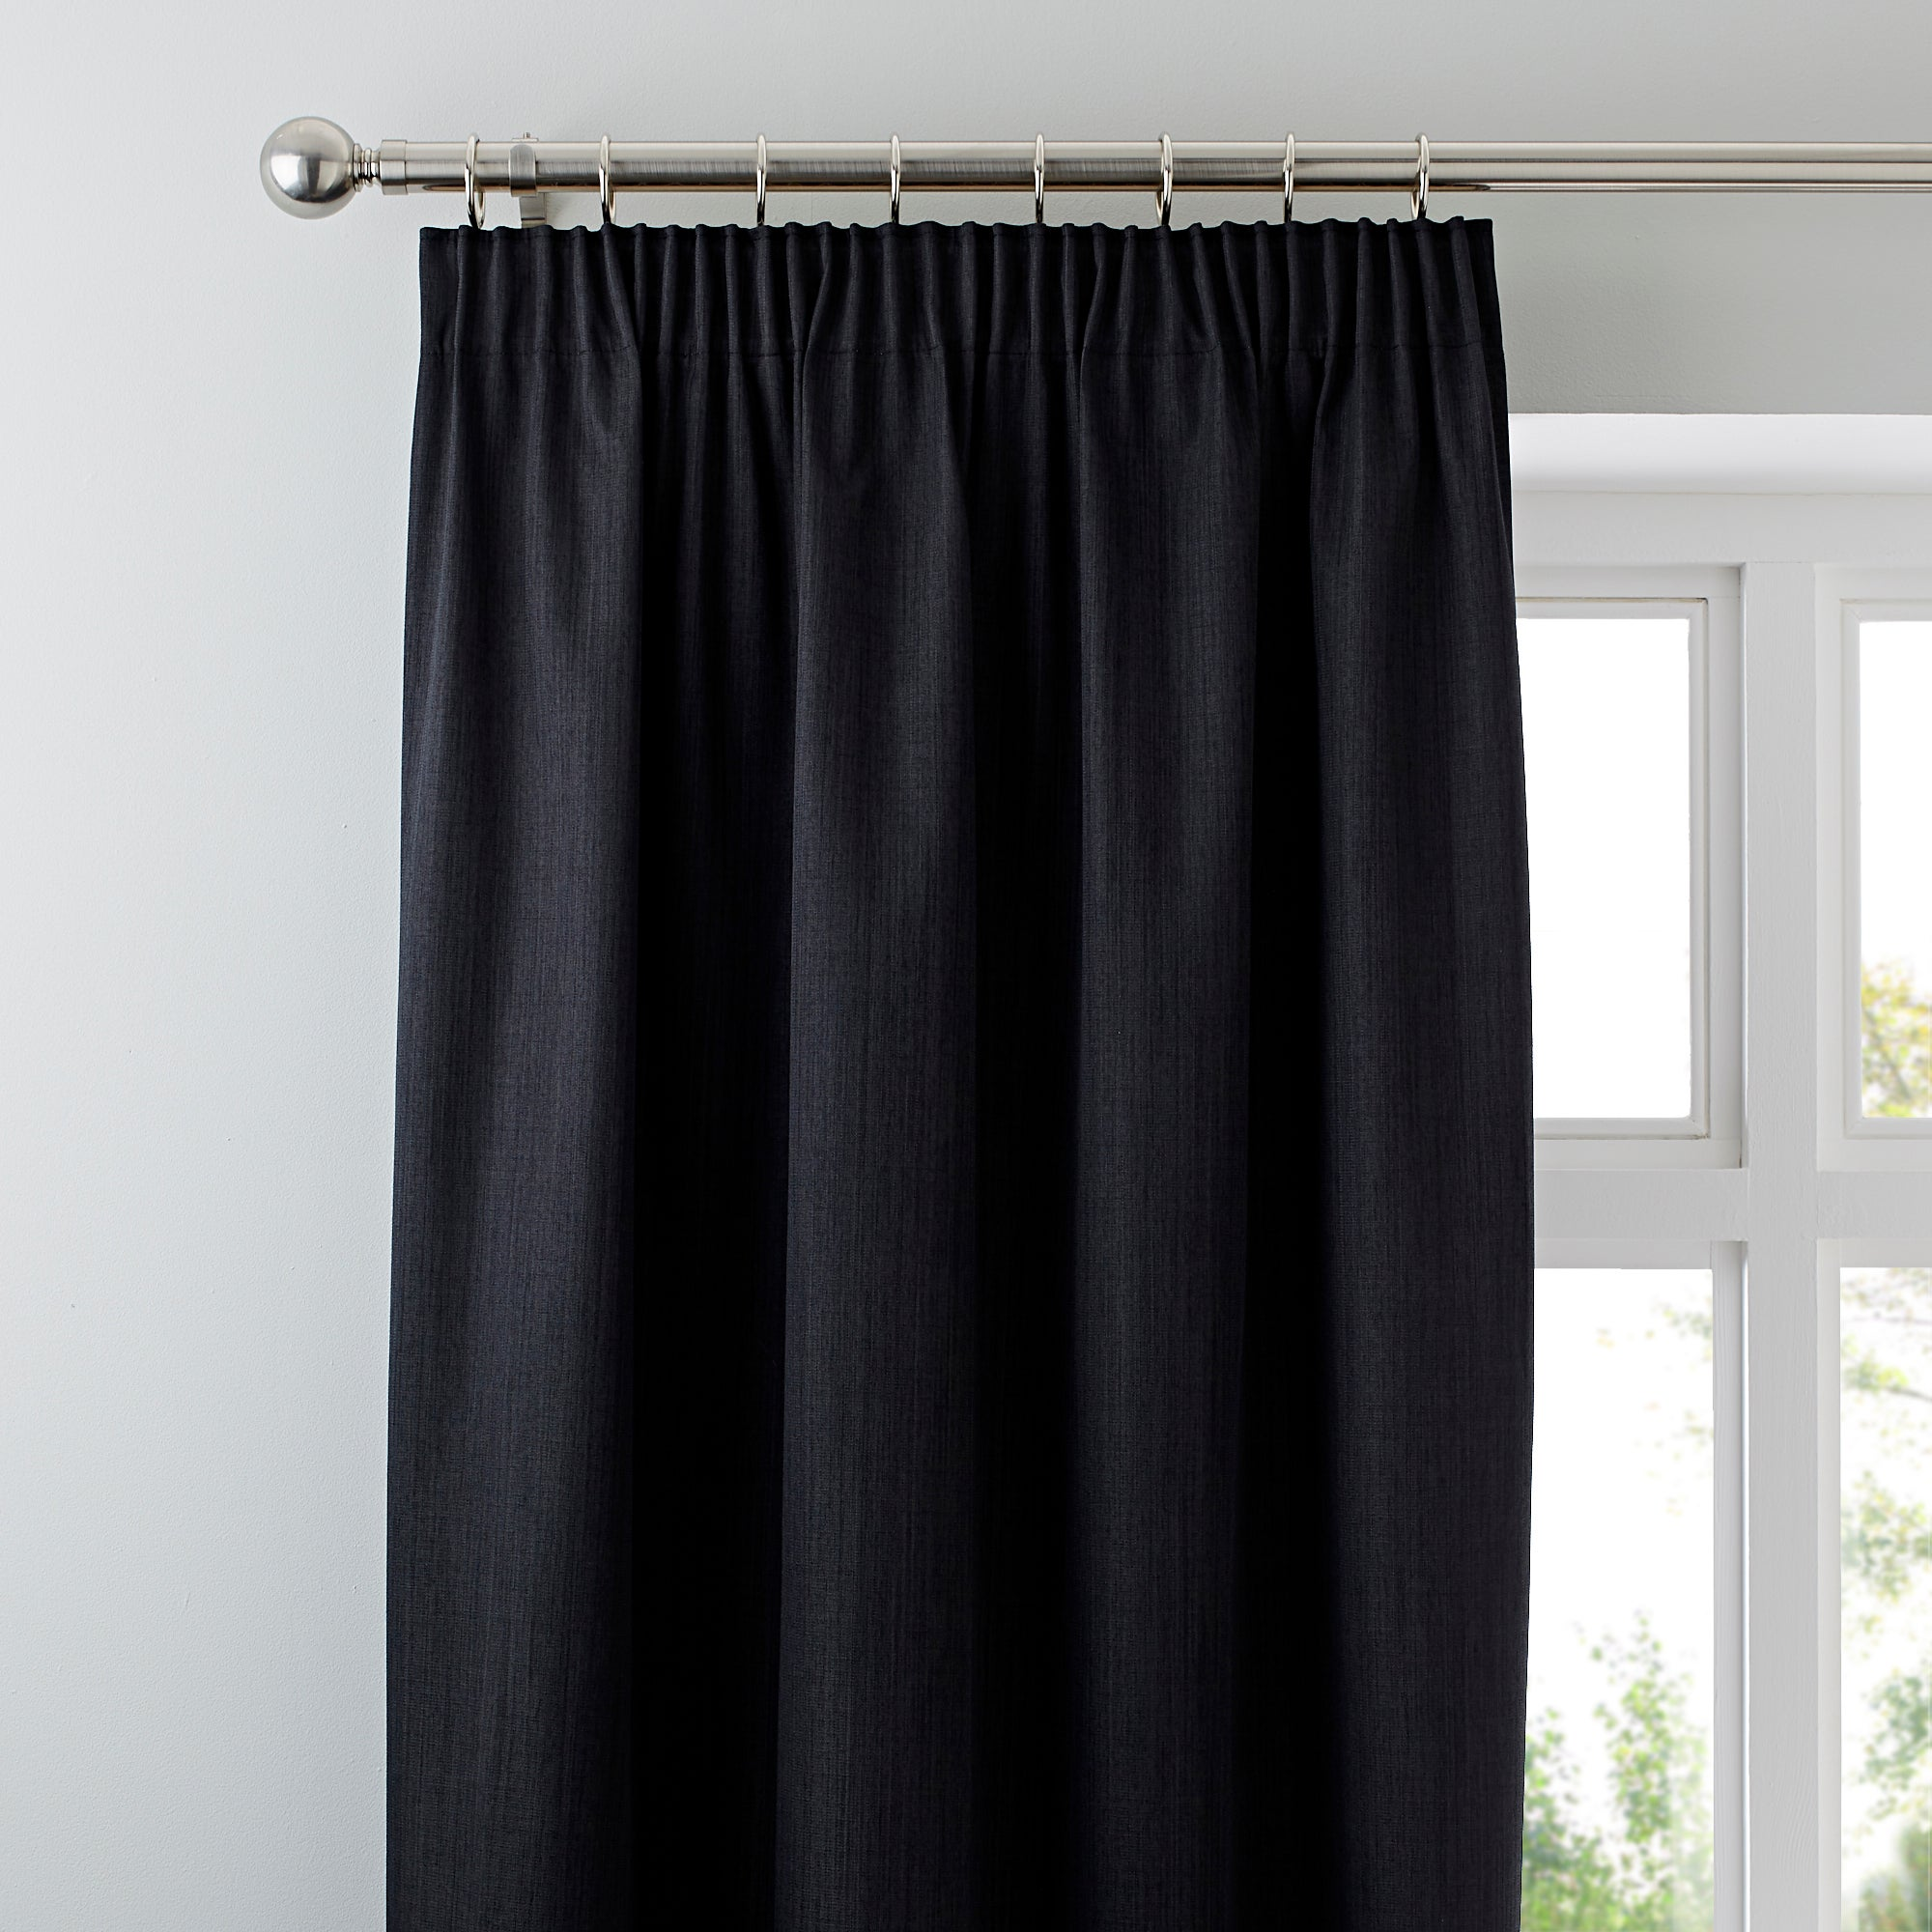 Waters and Noble Black Solar Blackout Pencil Pleat Curtains